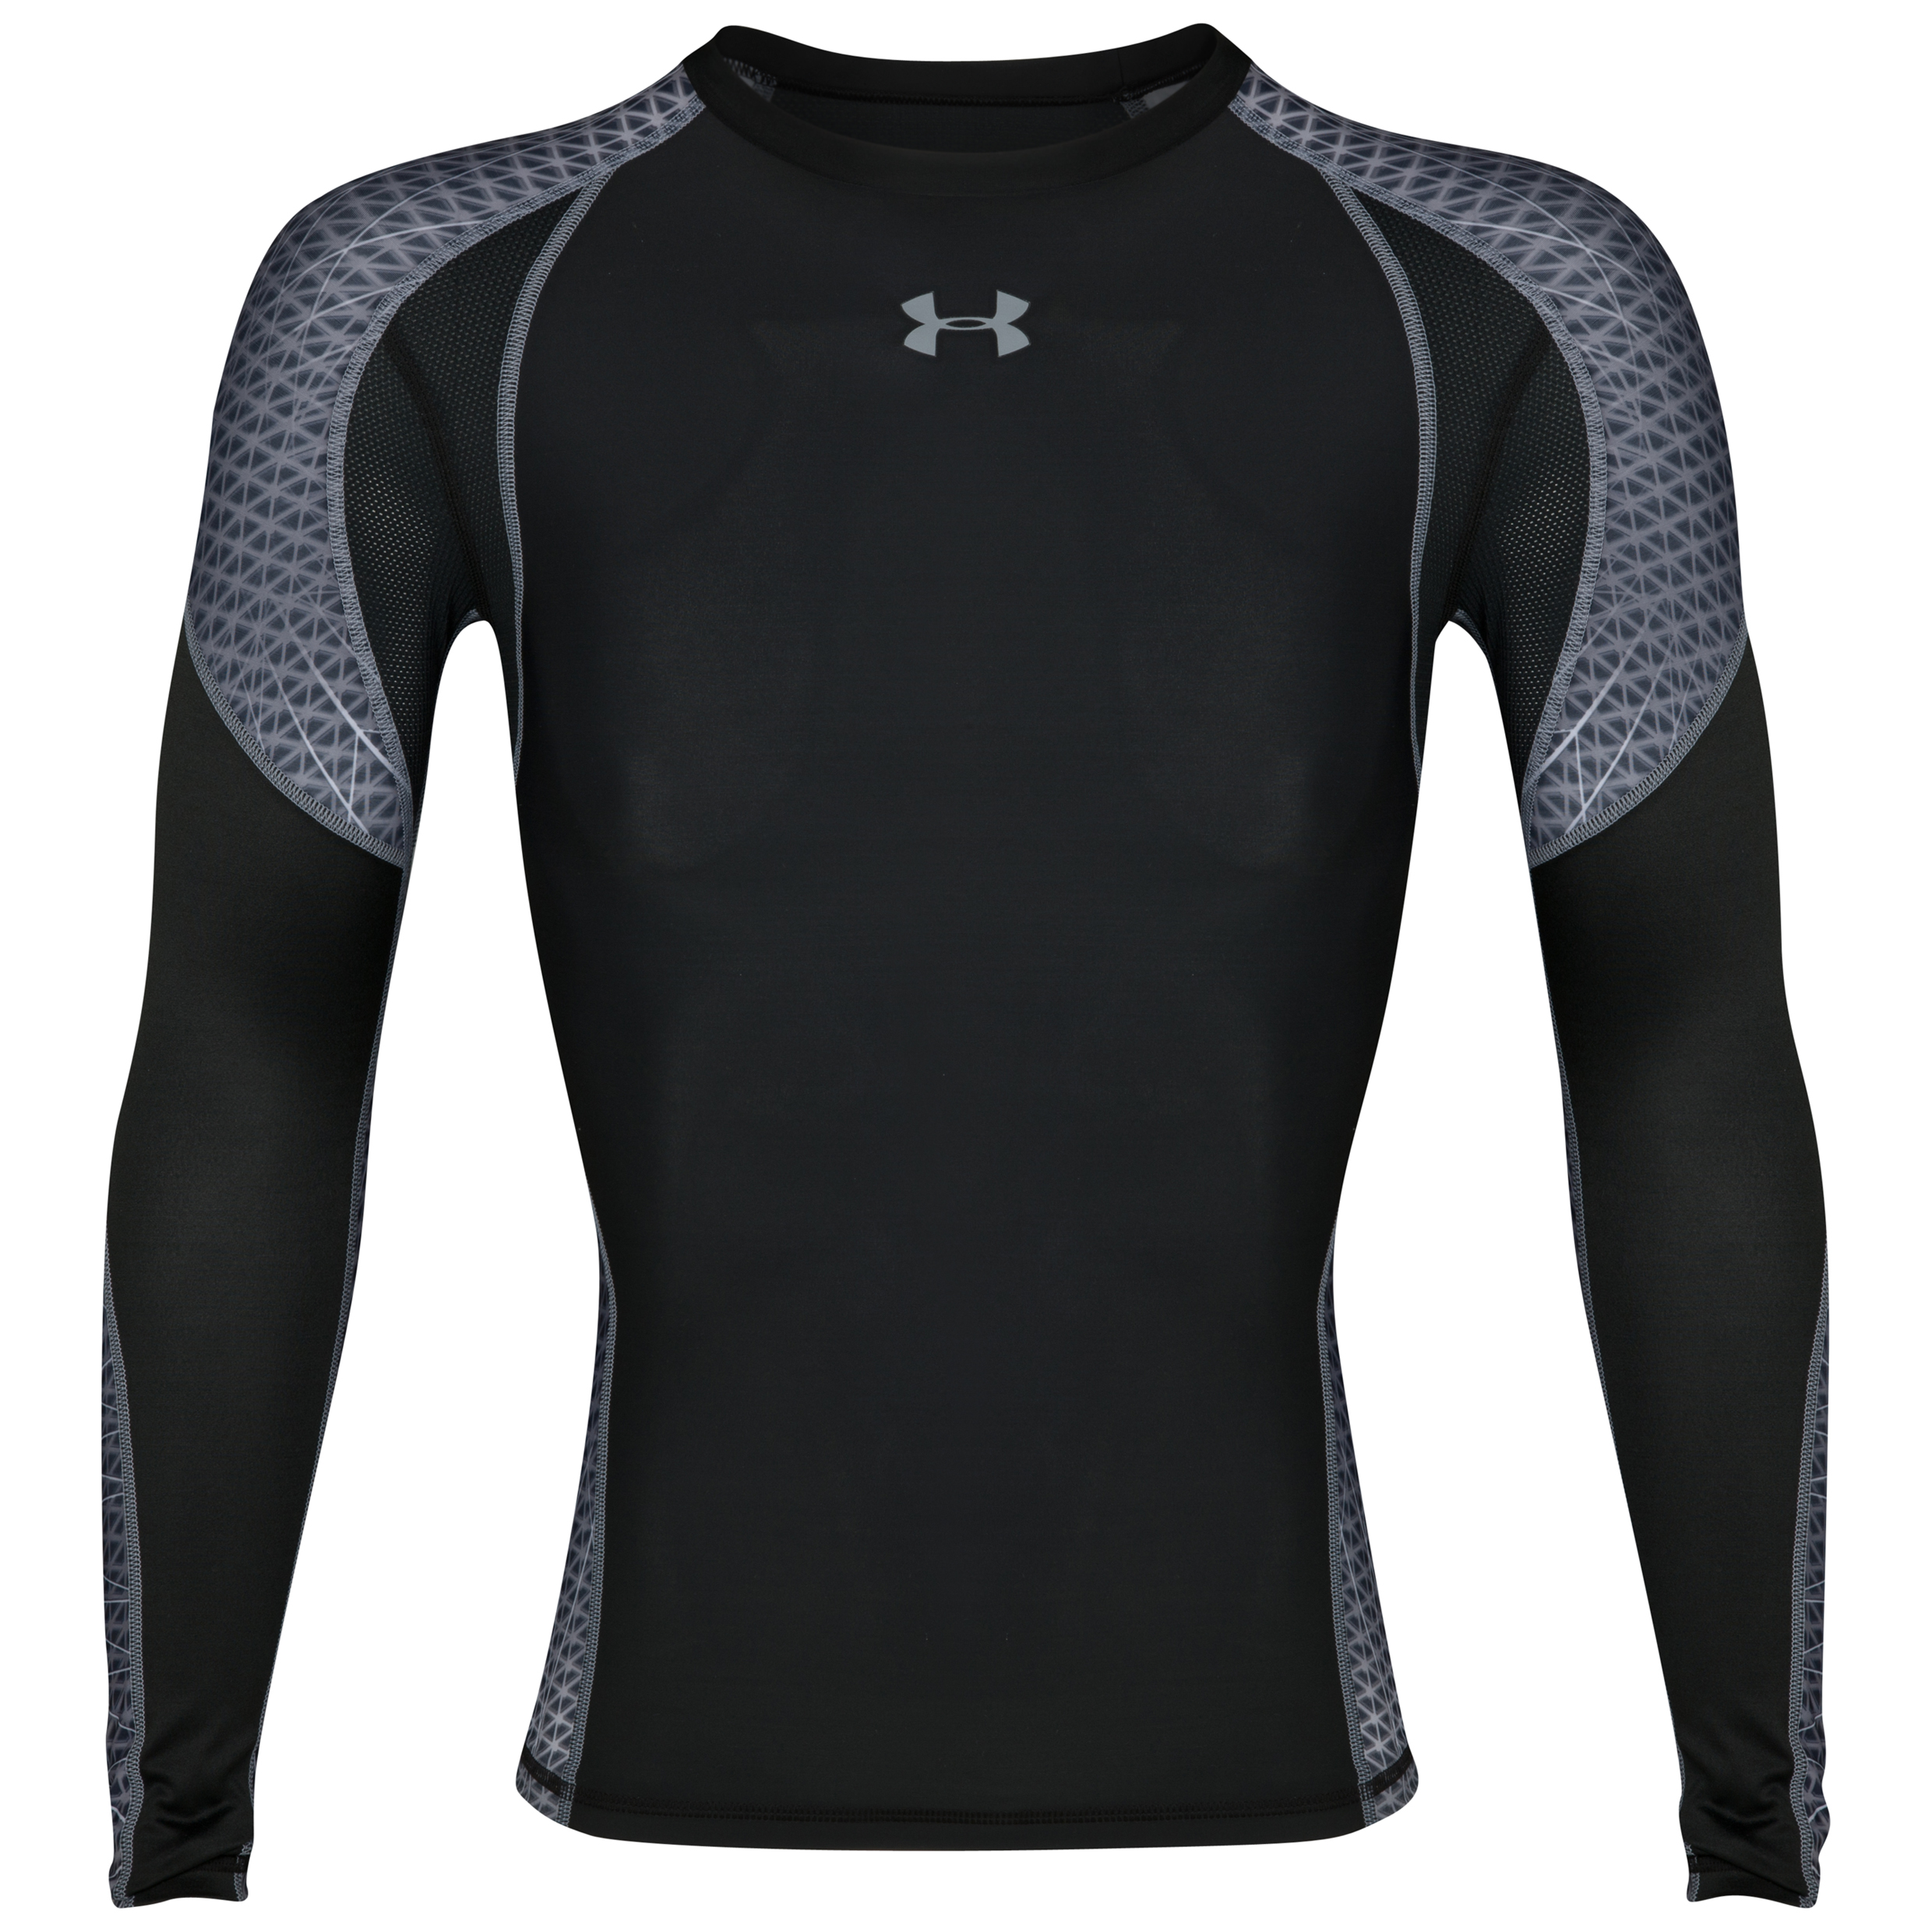 Under Armour Warp Speed Baselayer Top - Black/Steel - Long Sleeve